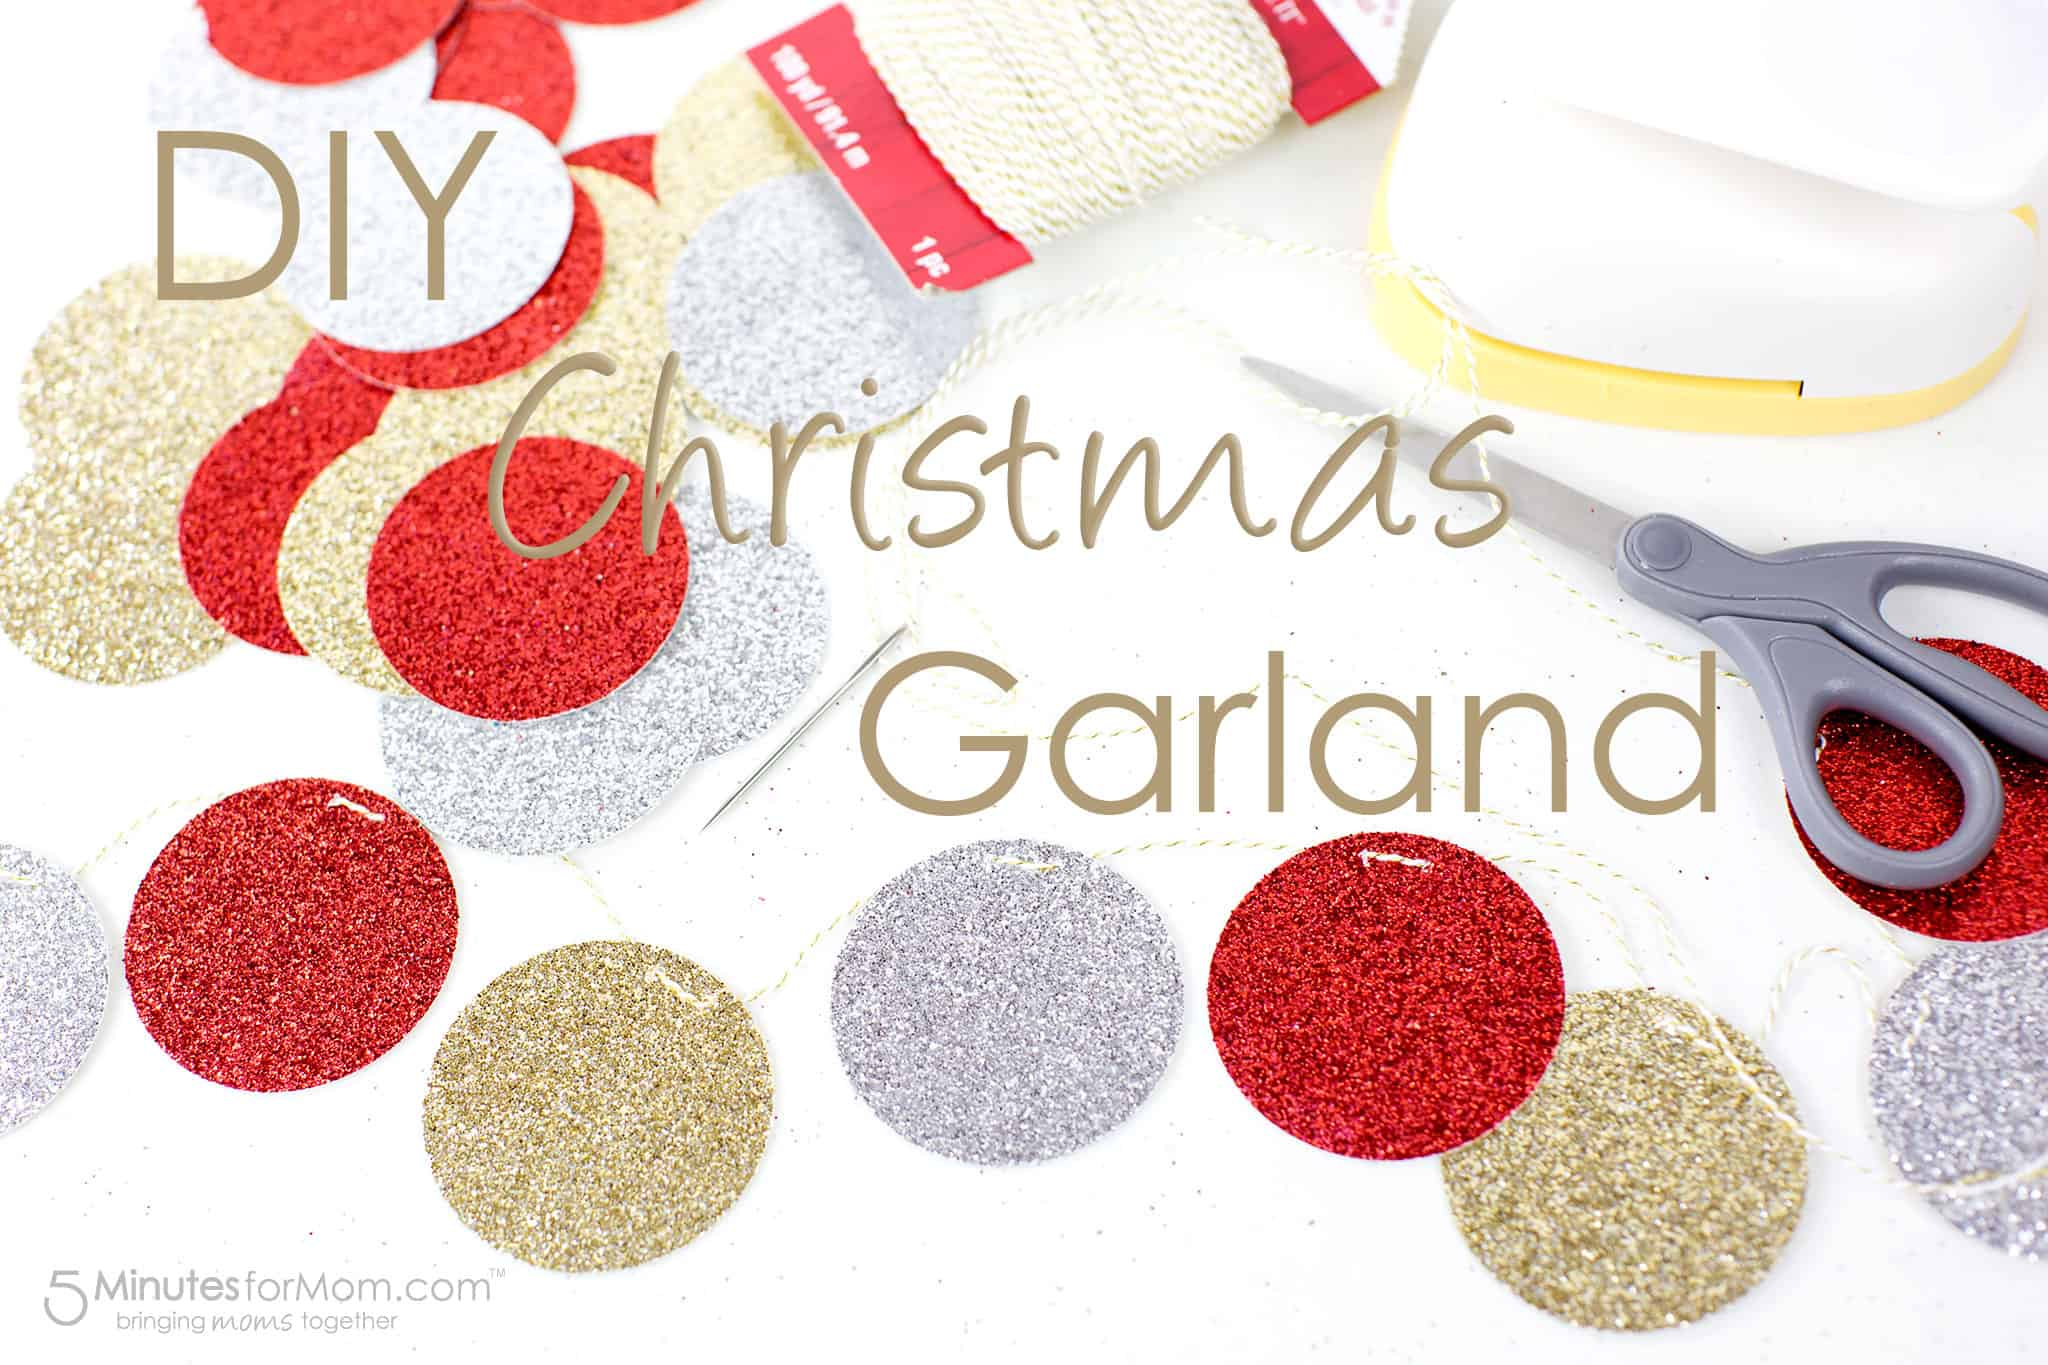 DIY-Christmas-Garland-2